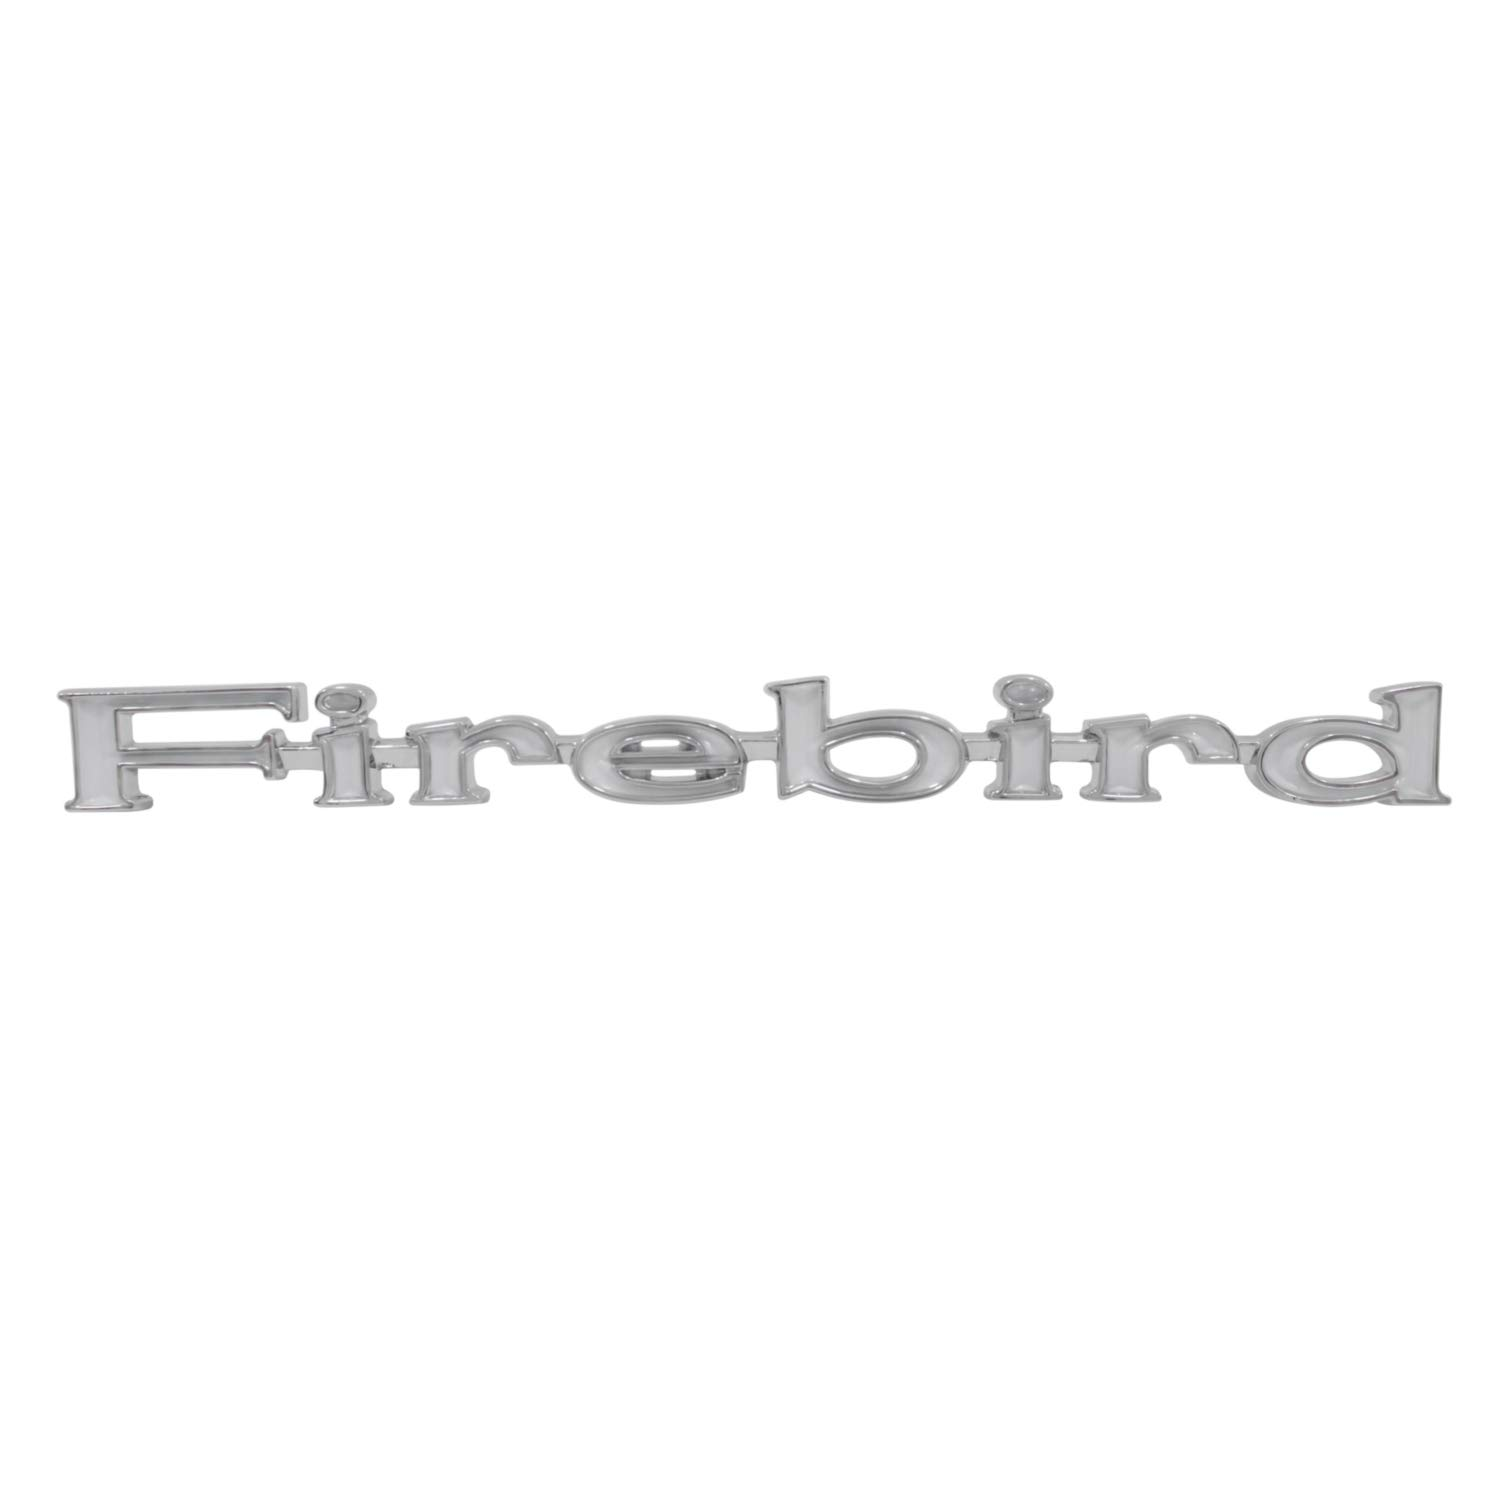 "Trim Parts 8507 Front Fender Emblem 1969 Firebird /""Firebird /"""